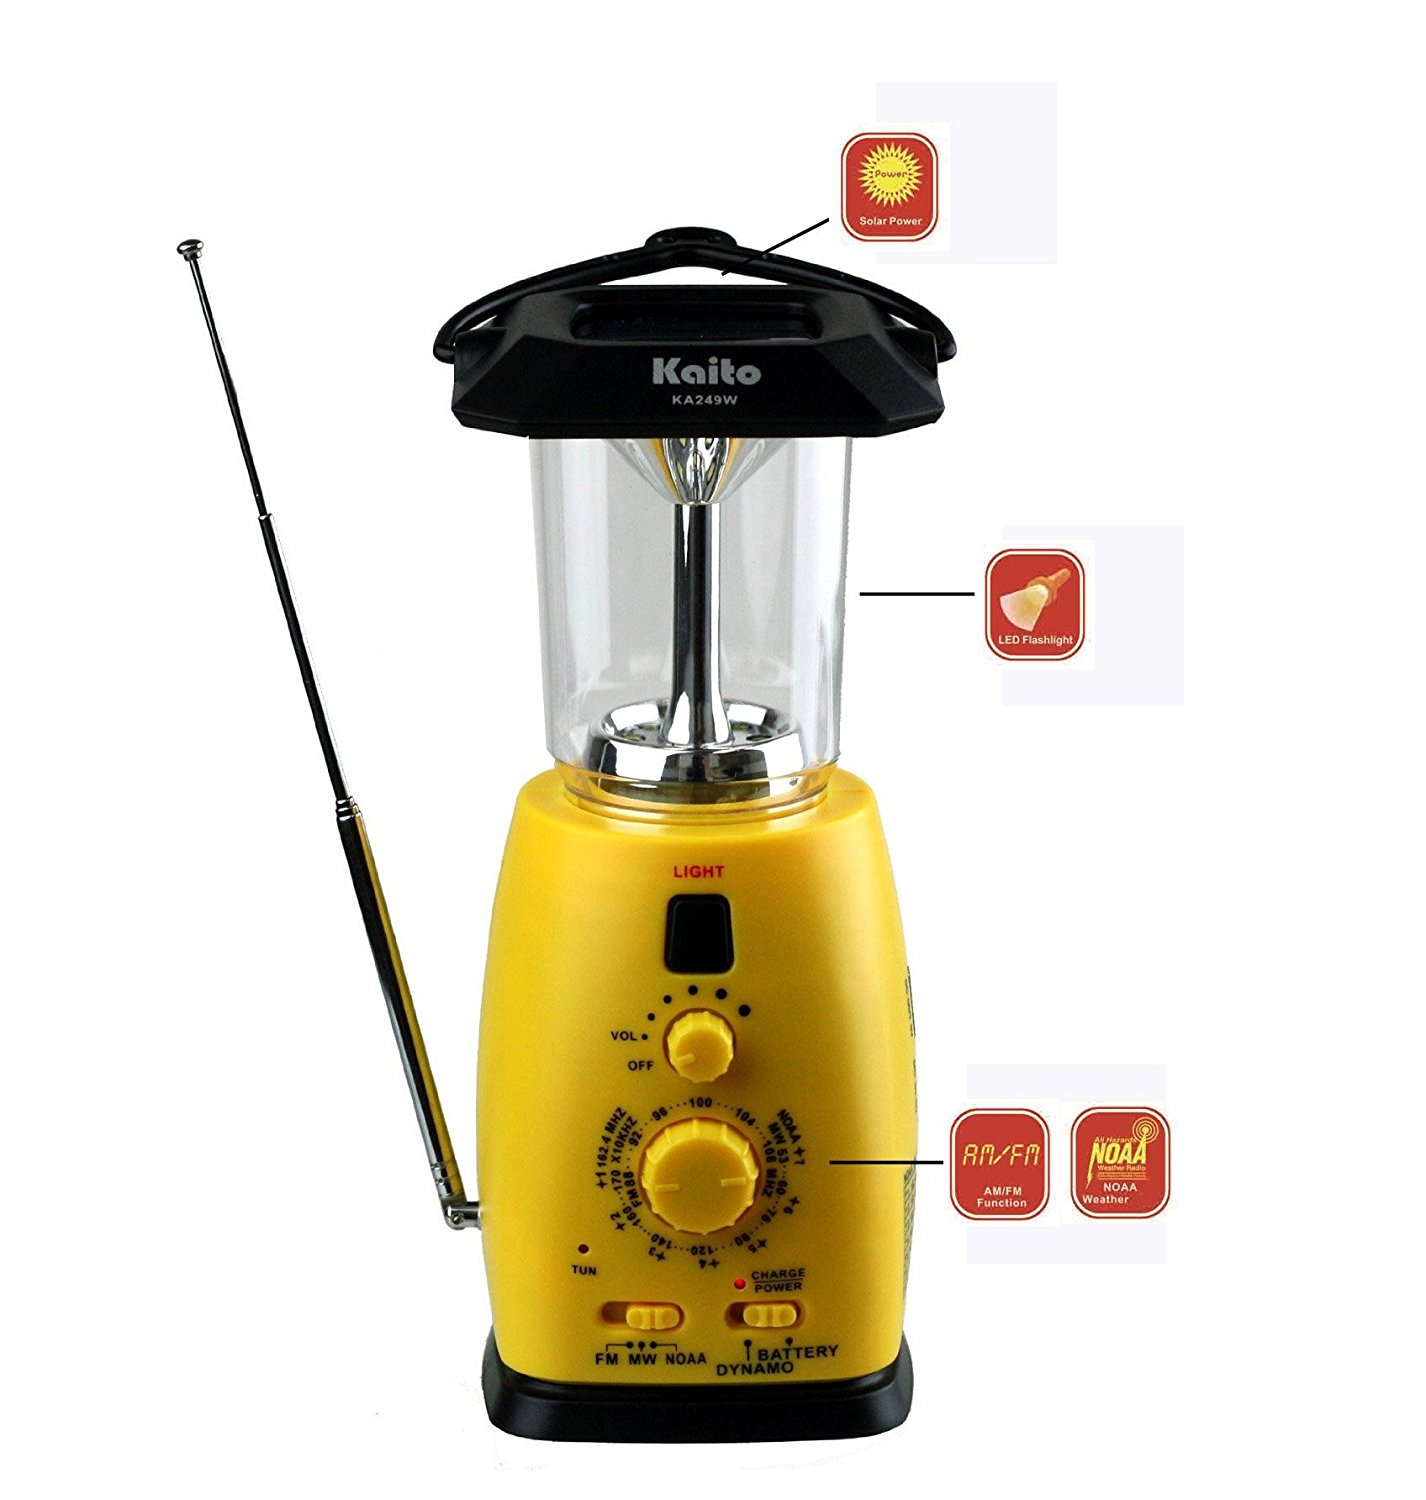 Kaito KA249W Solar and Crank LED Camping Lantern with AM FM NOAA Weather Radio & Cell Phone Charger - Yellow